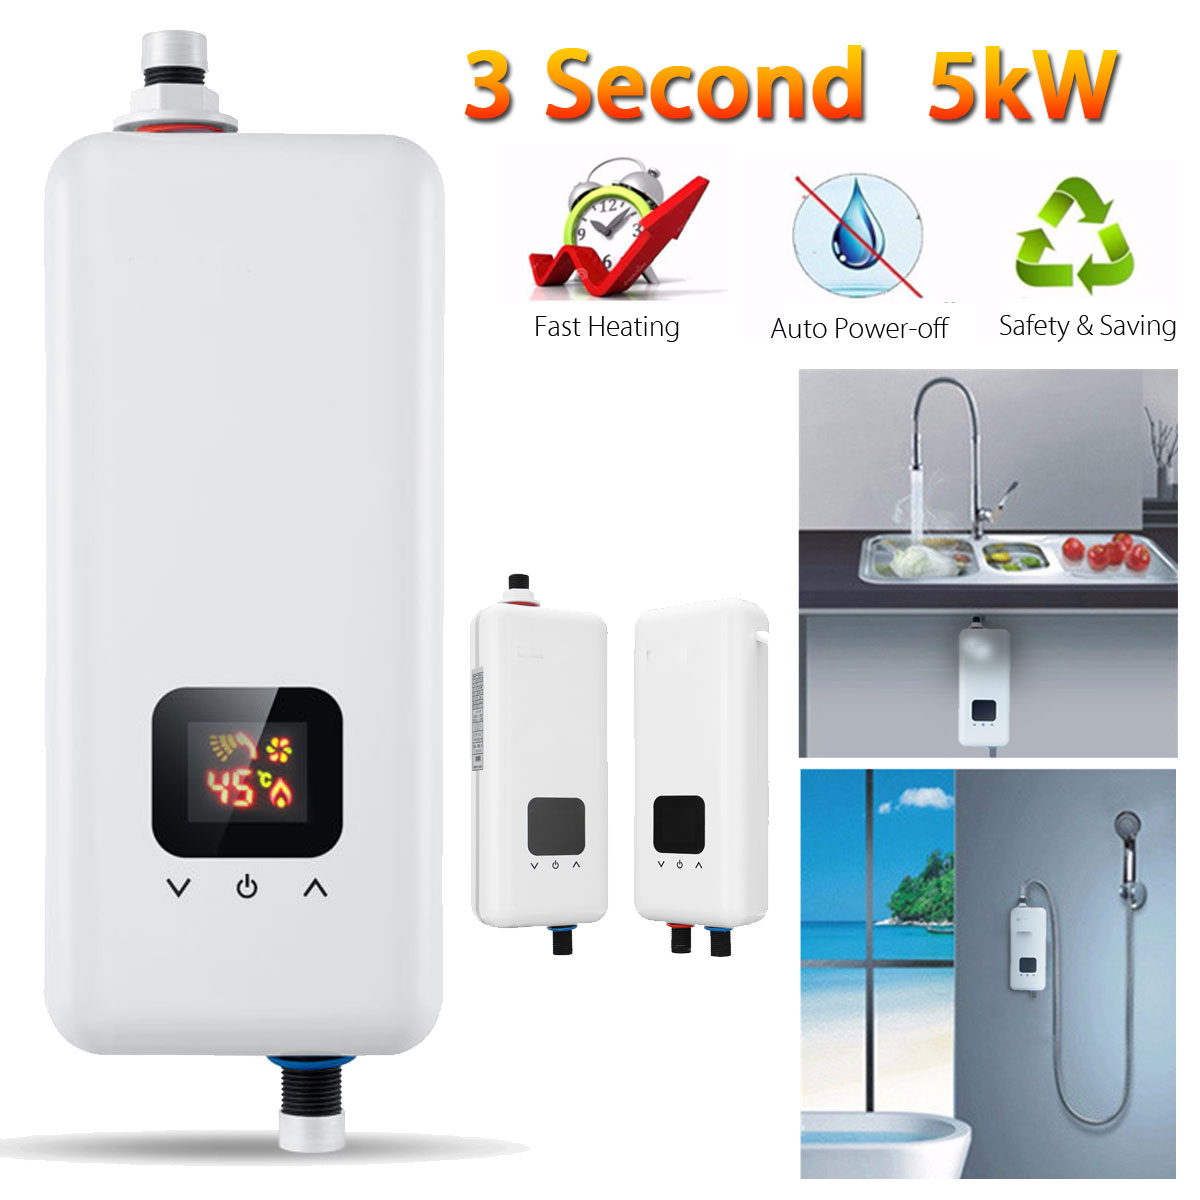 warmtoo Mini Tankless Electric Instant Hot Water System 220V 5500W Faucet Kitchen Instant Heating Tap Water Heaterwarmtoo Mini Tankless Electric Instant Hot Water System 220V 5500W Faucet Kitchen Instant Heating Tap Water Heater